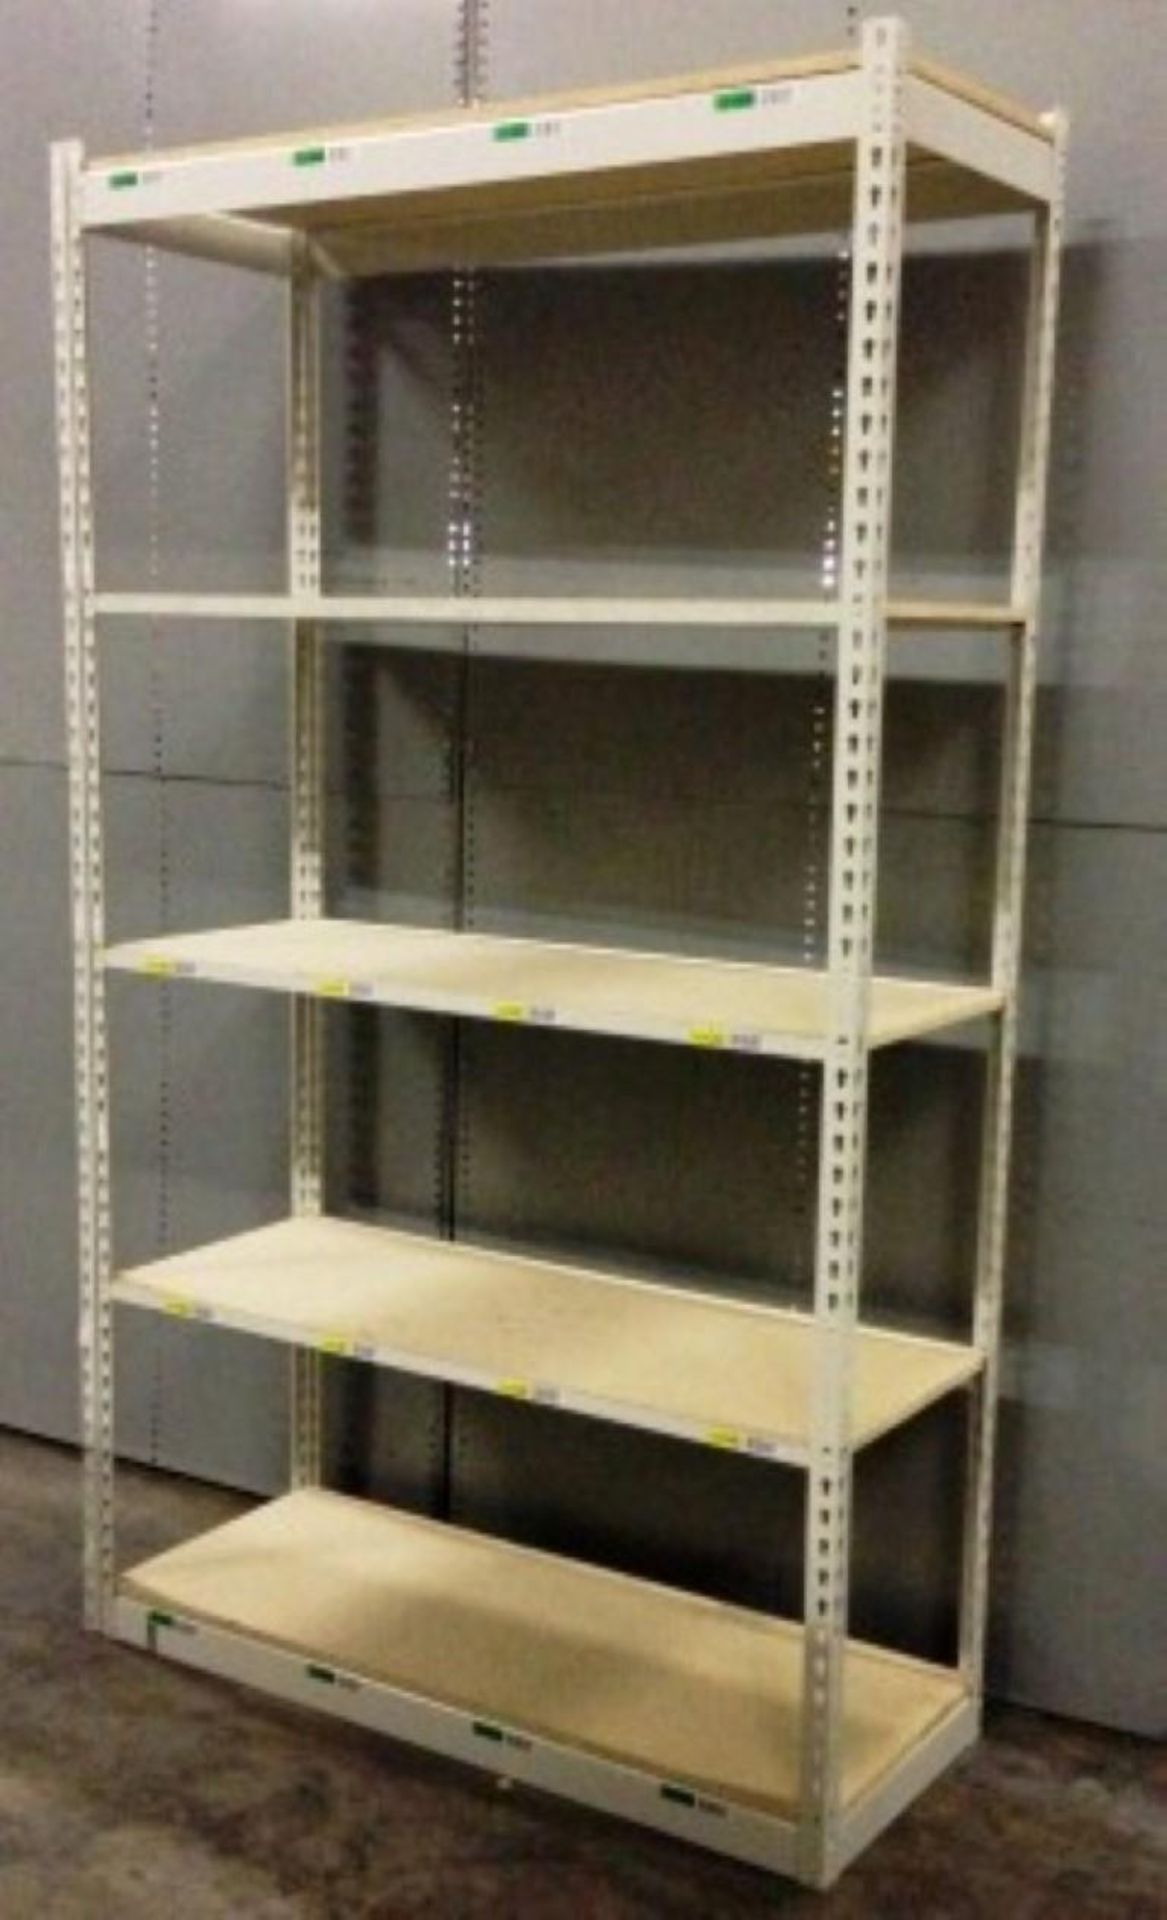 ONE LOT OF 10 SECTIONS OF RIVETIER INDUSTRIAL SHELVING - Image 2 of 2